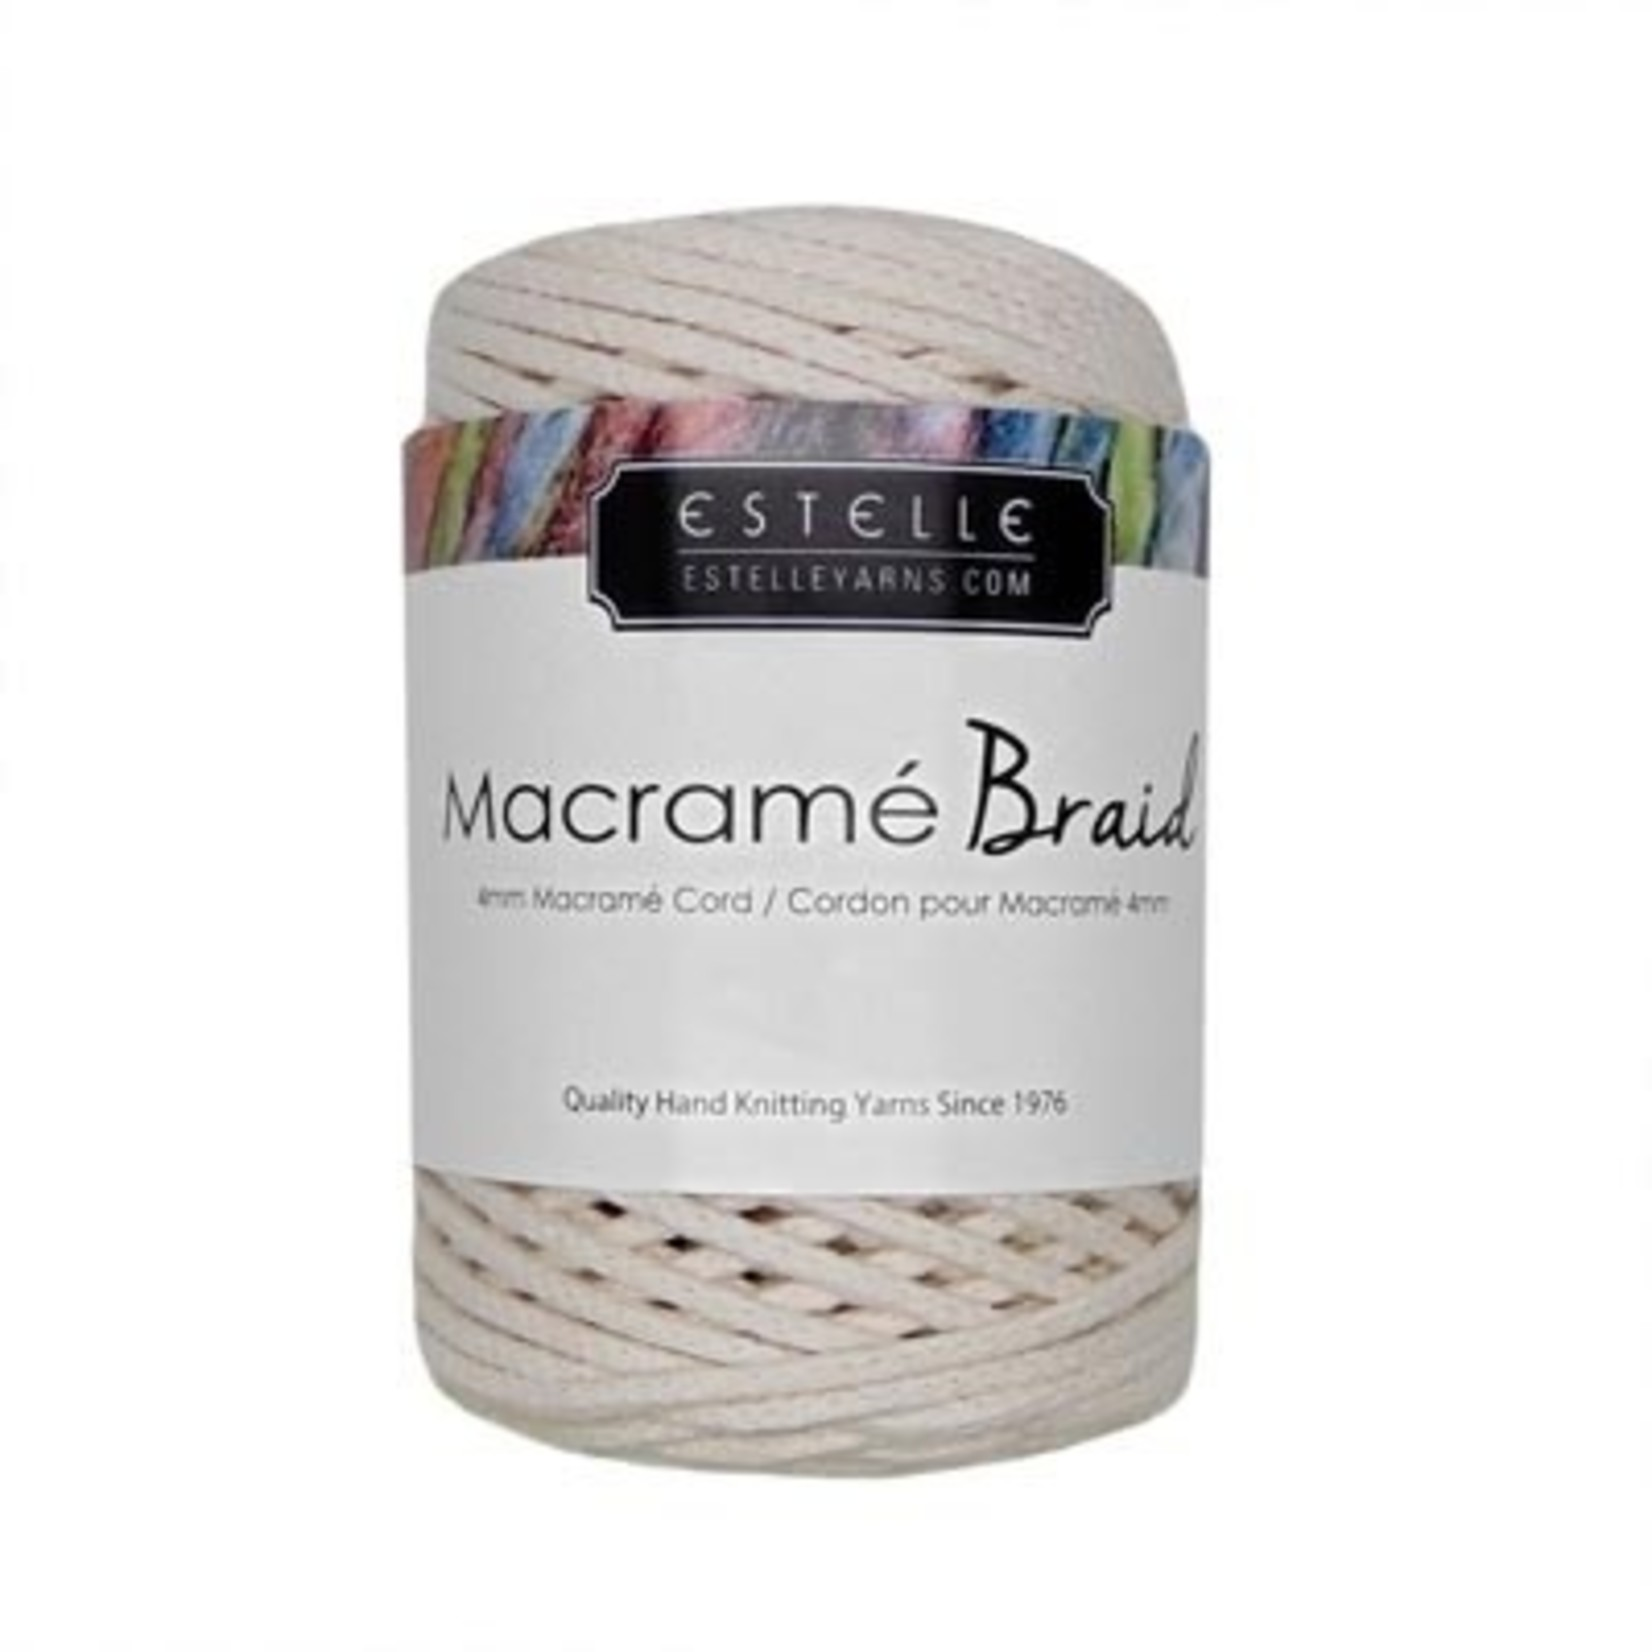 Estelle Macrame Braid by Estelle Yarns